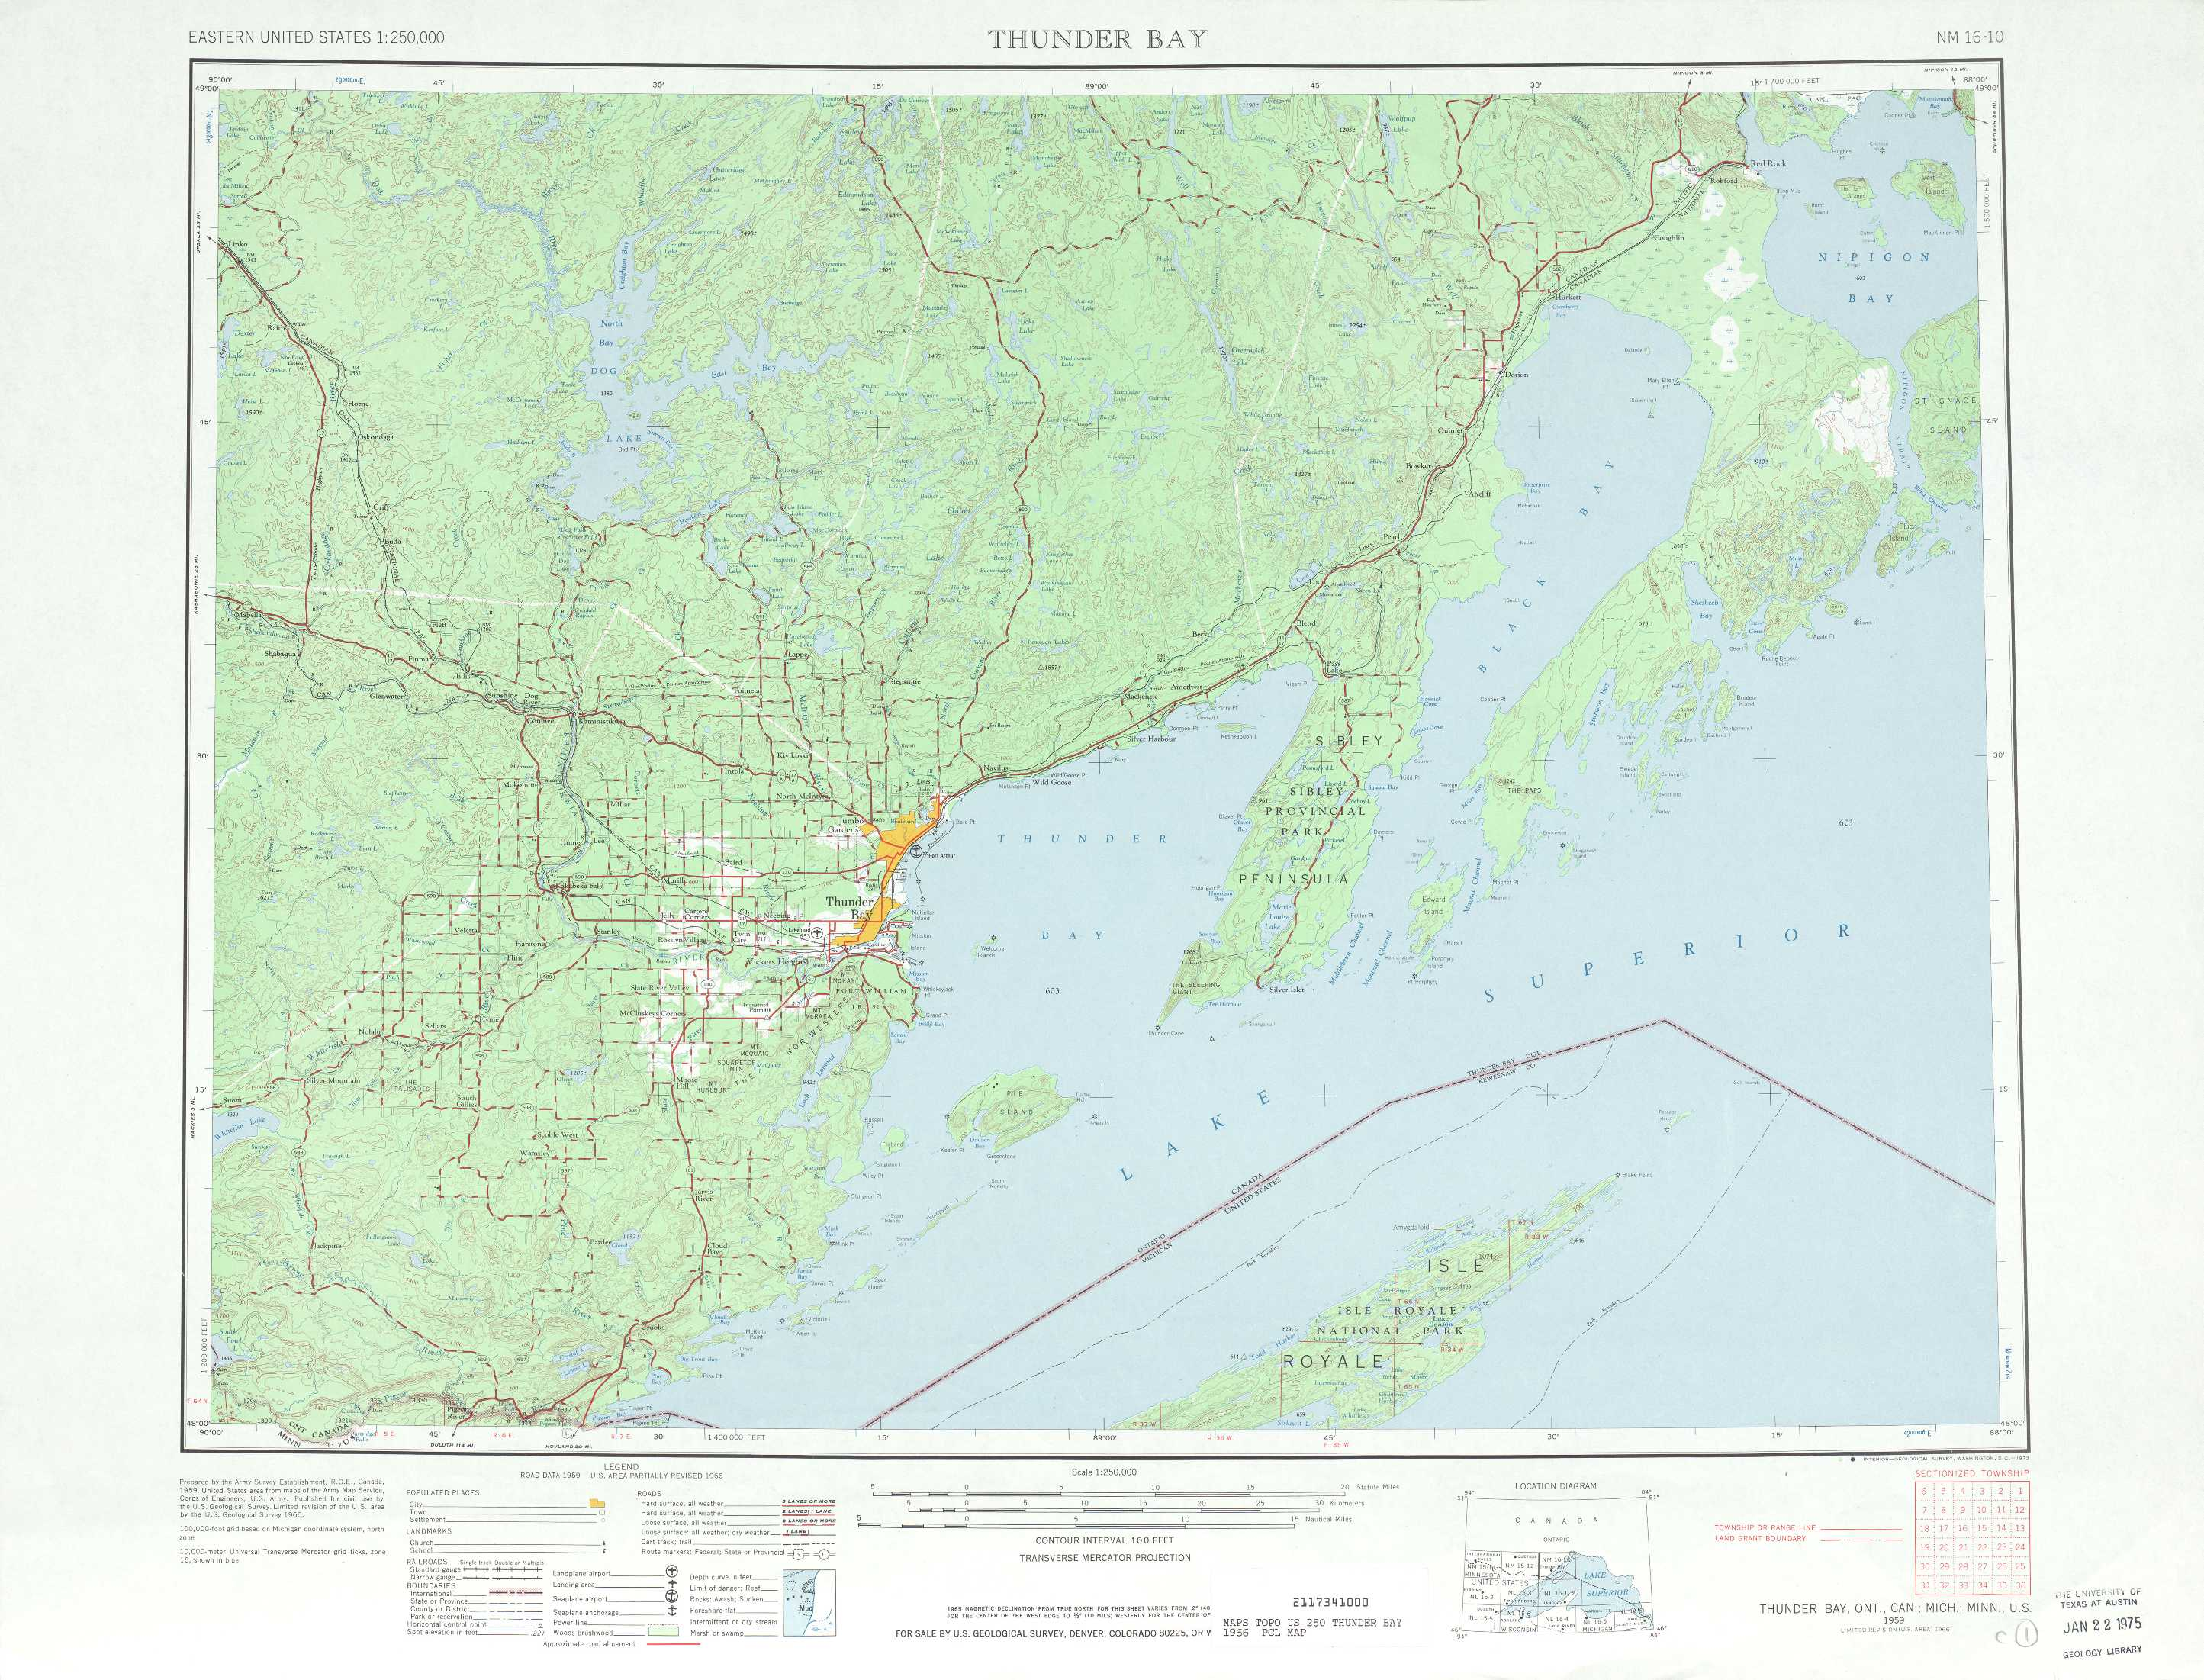 Thunder Bay topographic maps MI MN USGS Topo Quad 48088a1 at 1